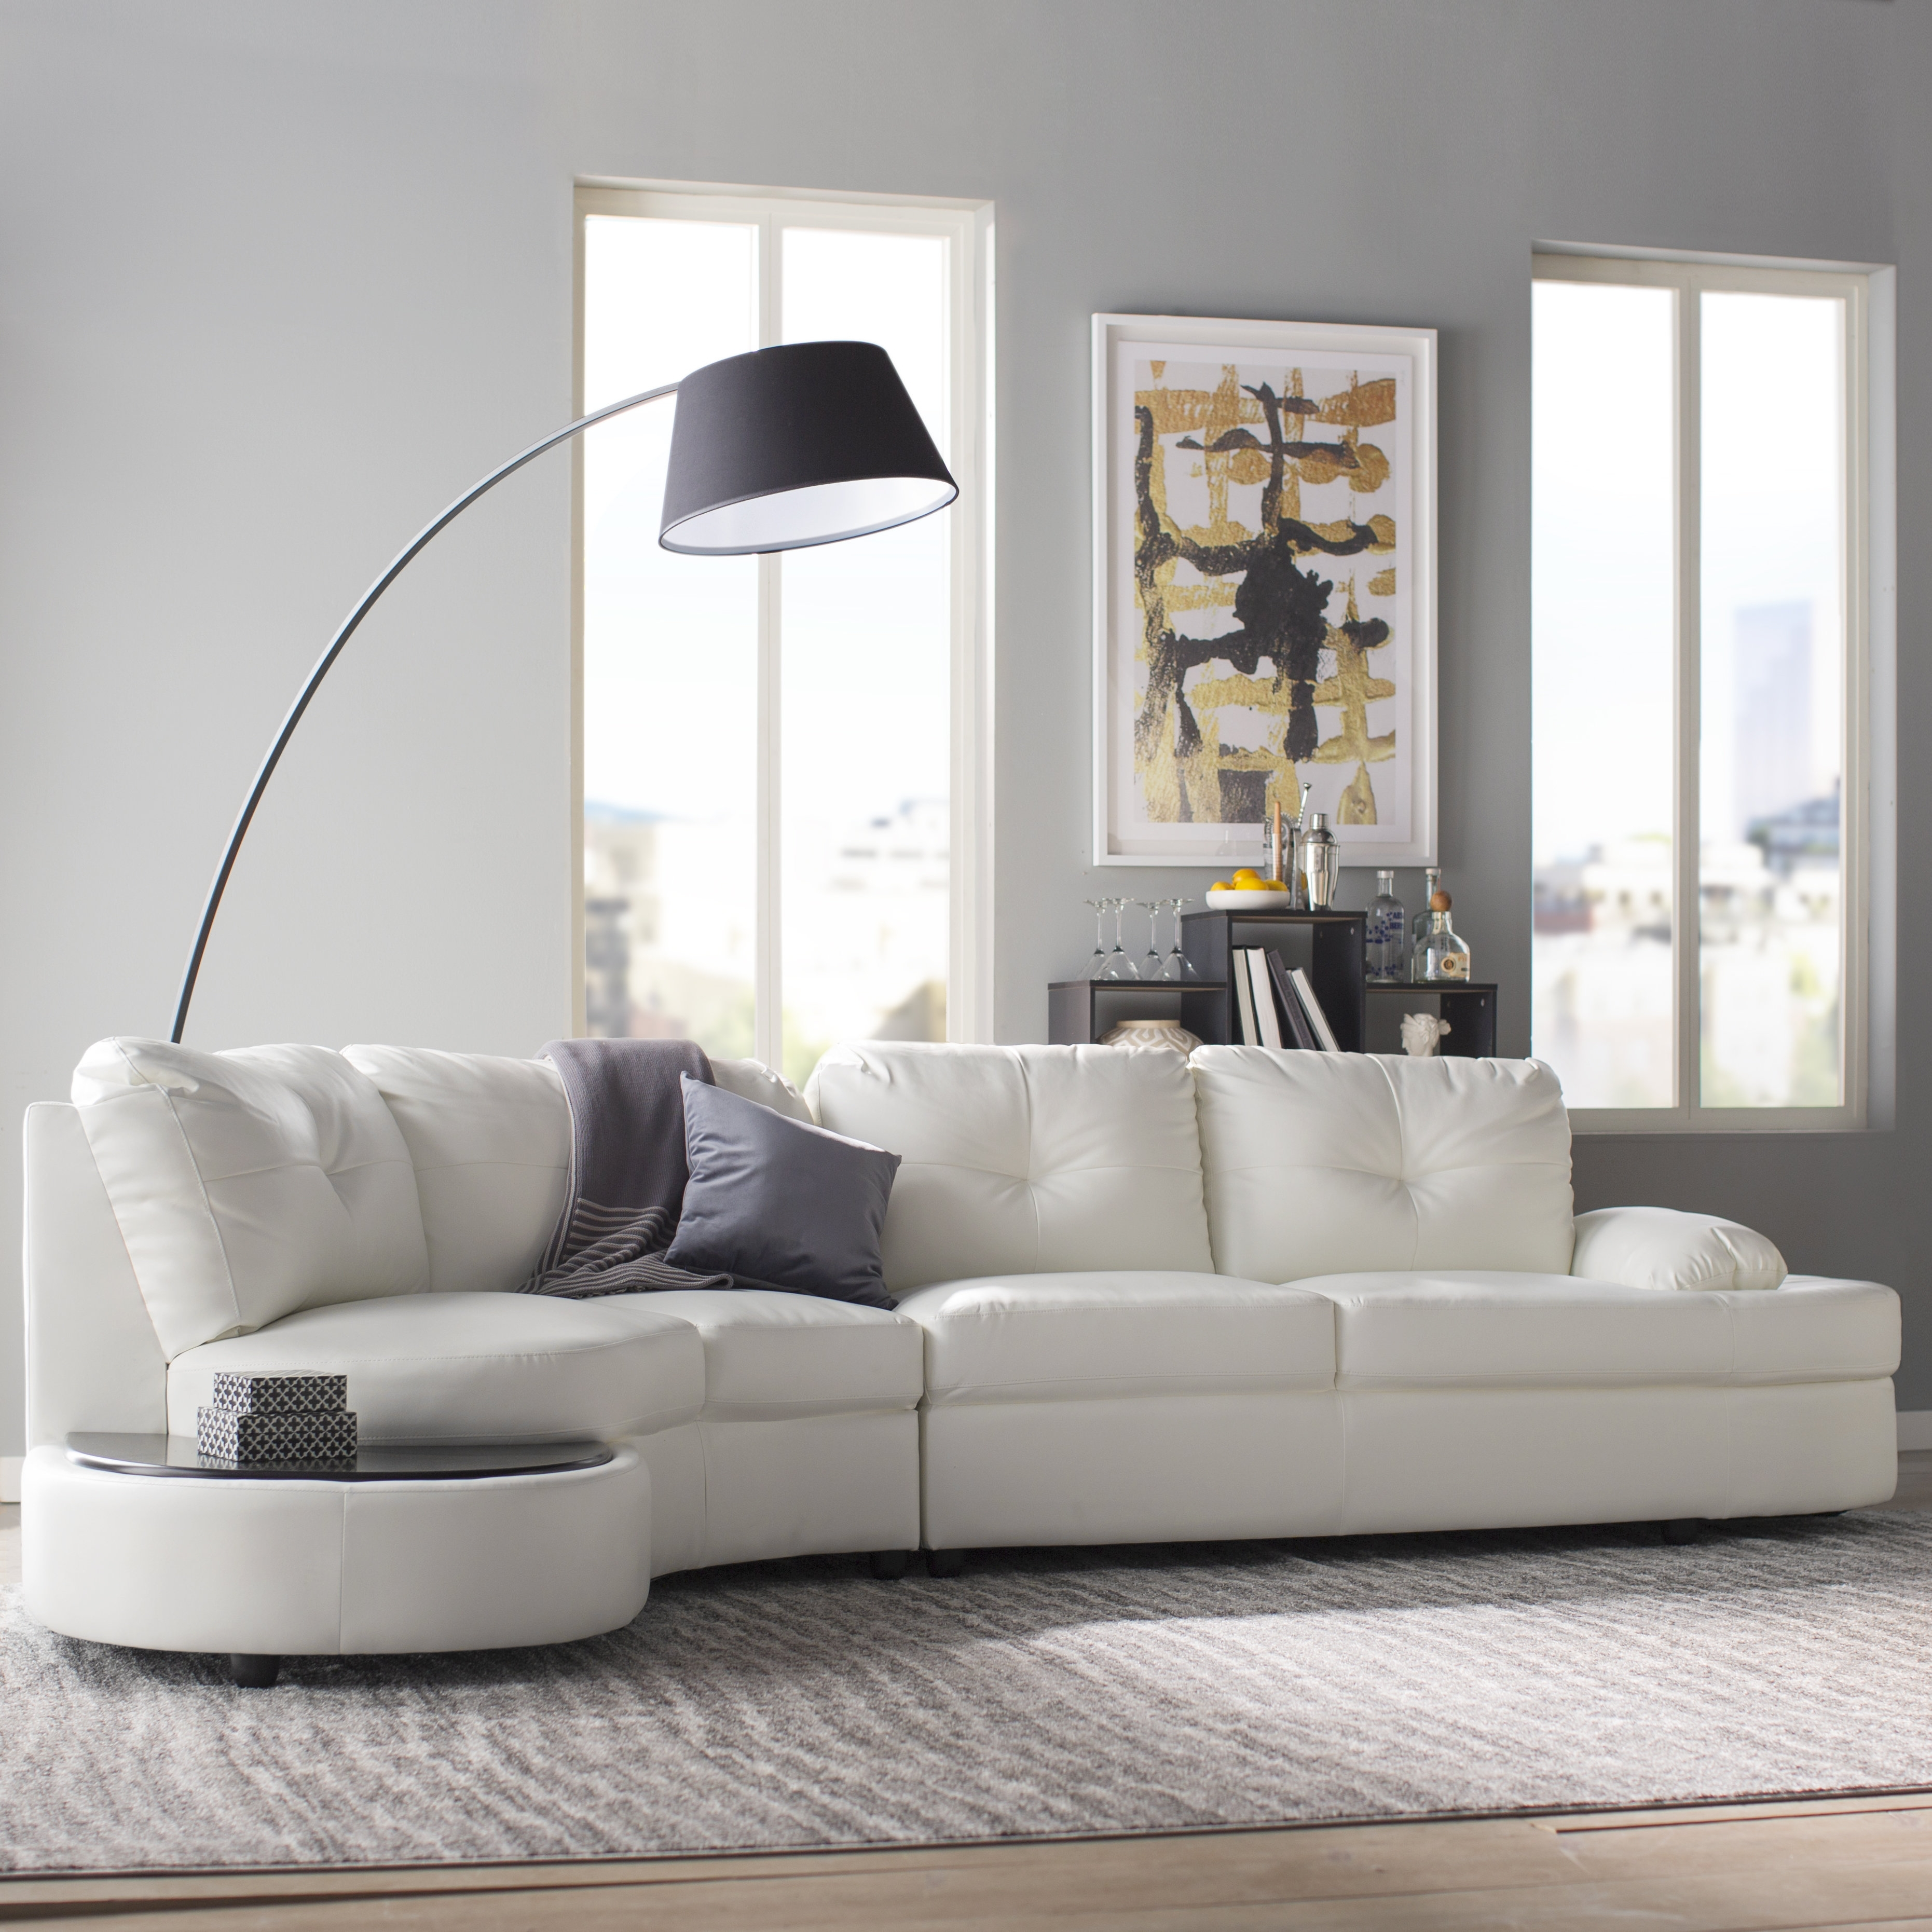 Wade Logan Bireuen Sectional & Reviews | Wayfair In Declan 3 Piece Power Reclining Sectionals With Left Facing Console Loveseat (Image 25 of 25)